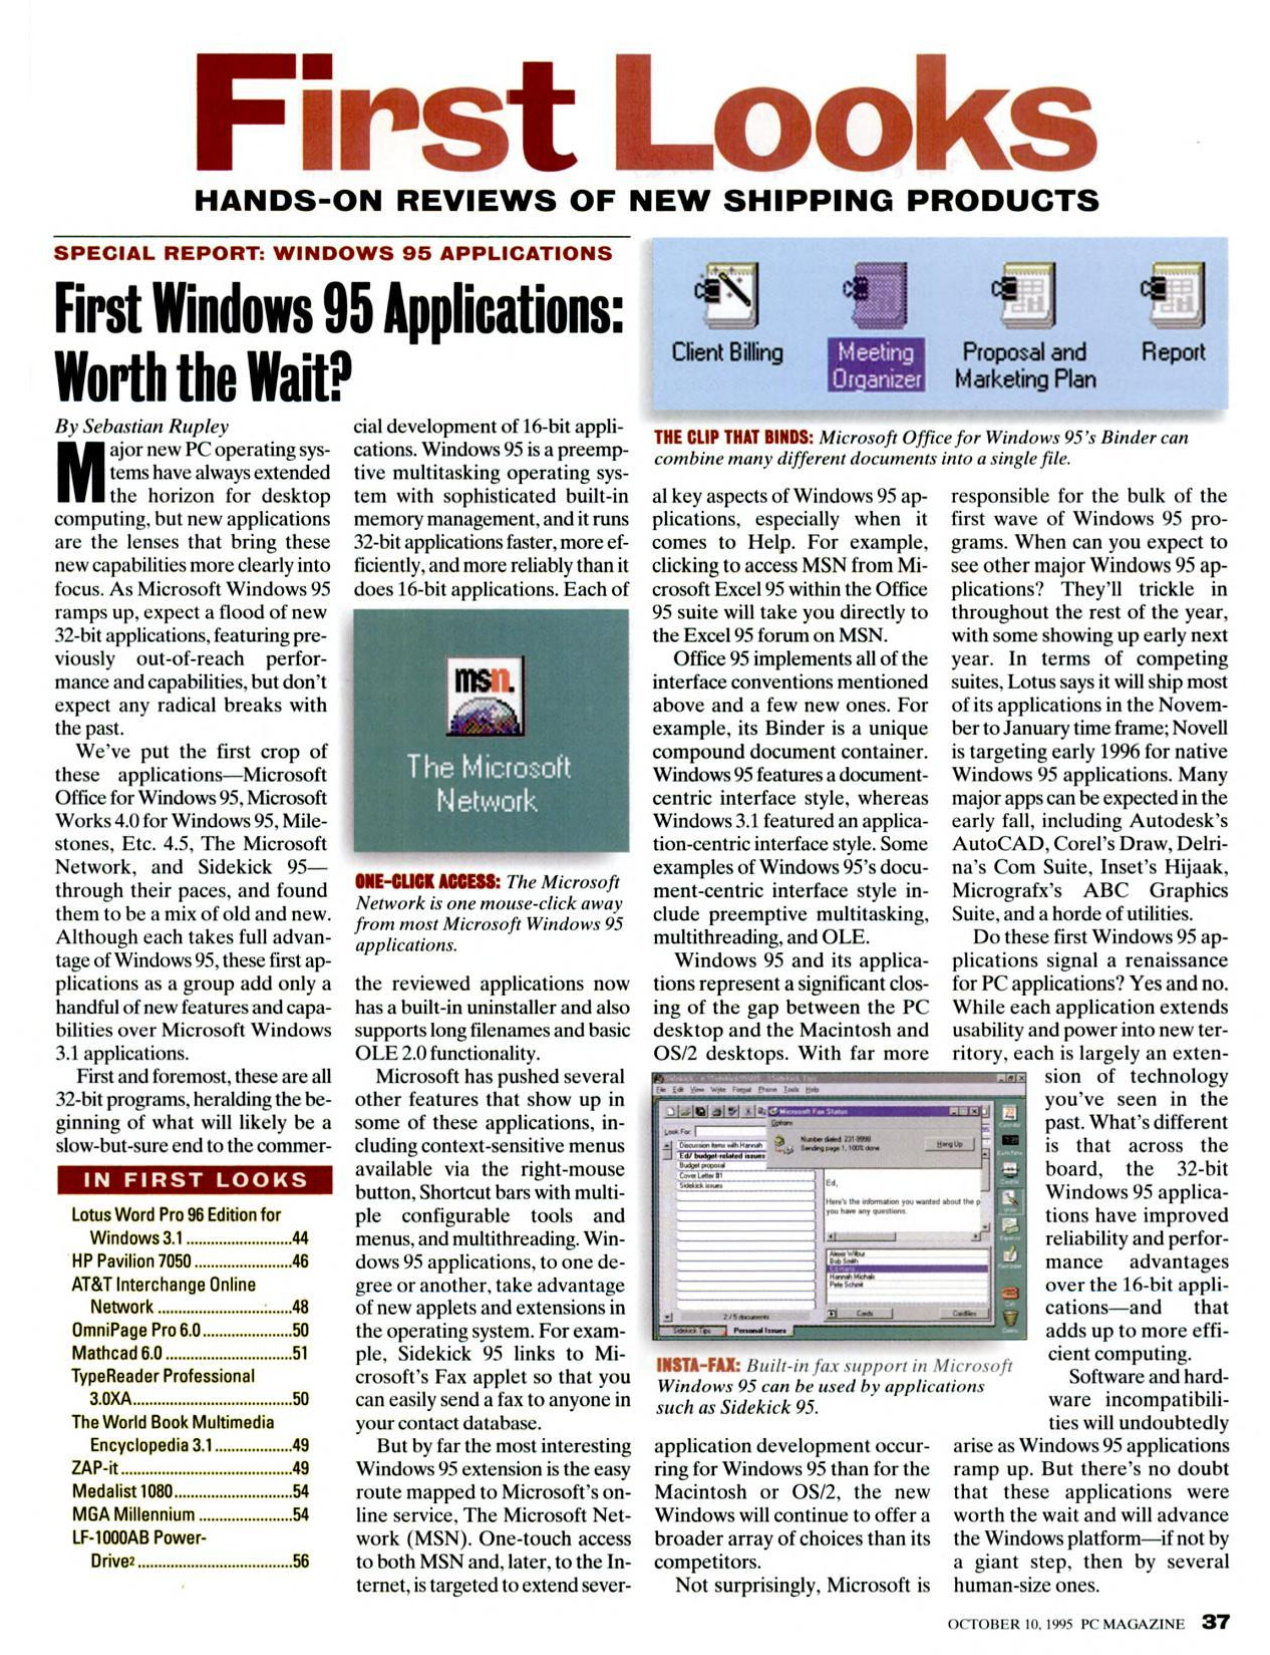 First Looks: Hands-on Reviews of latest and first Windows 95 applications.